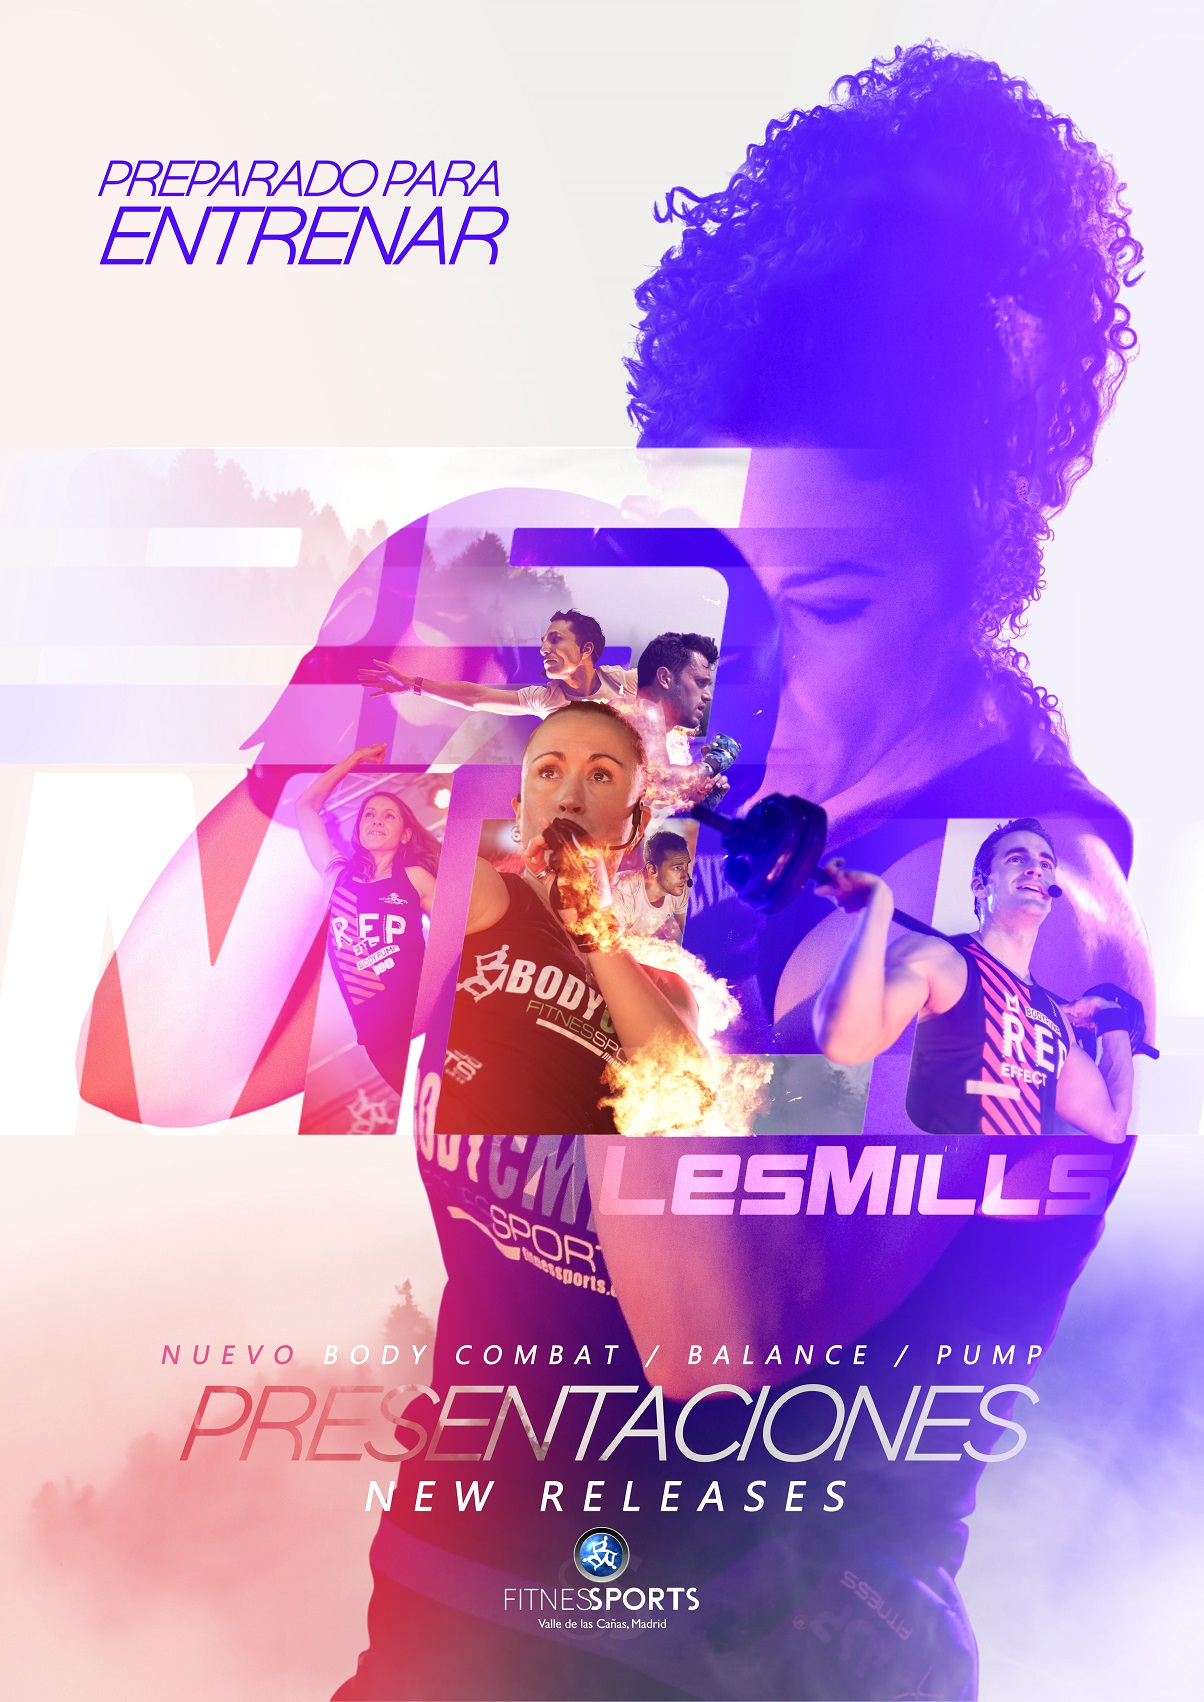 Les Mills Poster Design Fitness Sports Perfect Pixel Publicidad Agencia Madrid